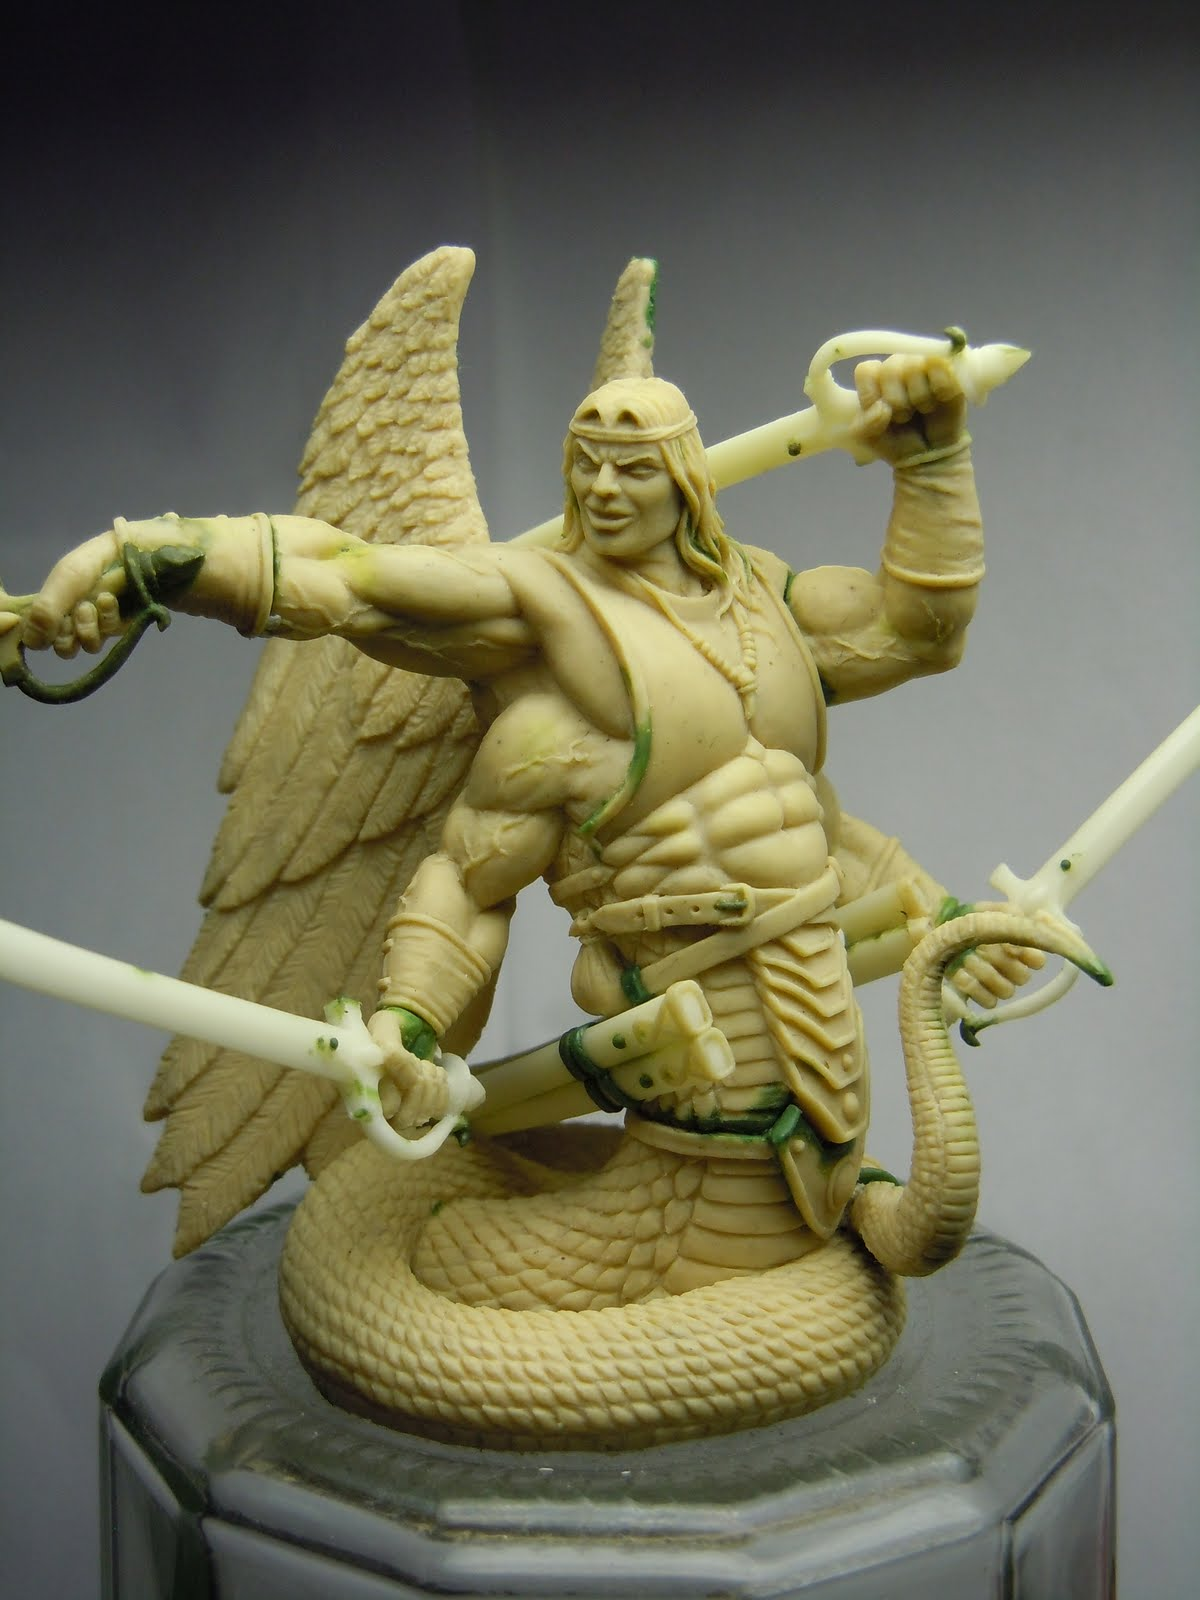 simon miniature sculptor ophius gorgon lord for maelstrom games. Black Bedroom Furniture Sets. Home Design Ideas